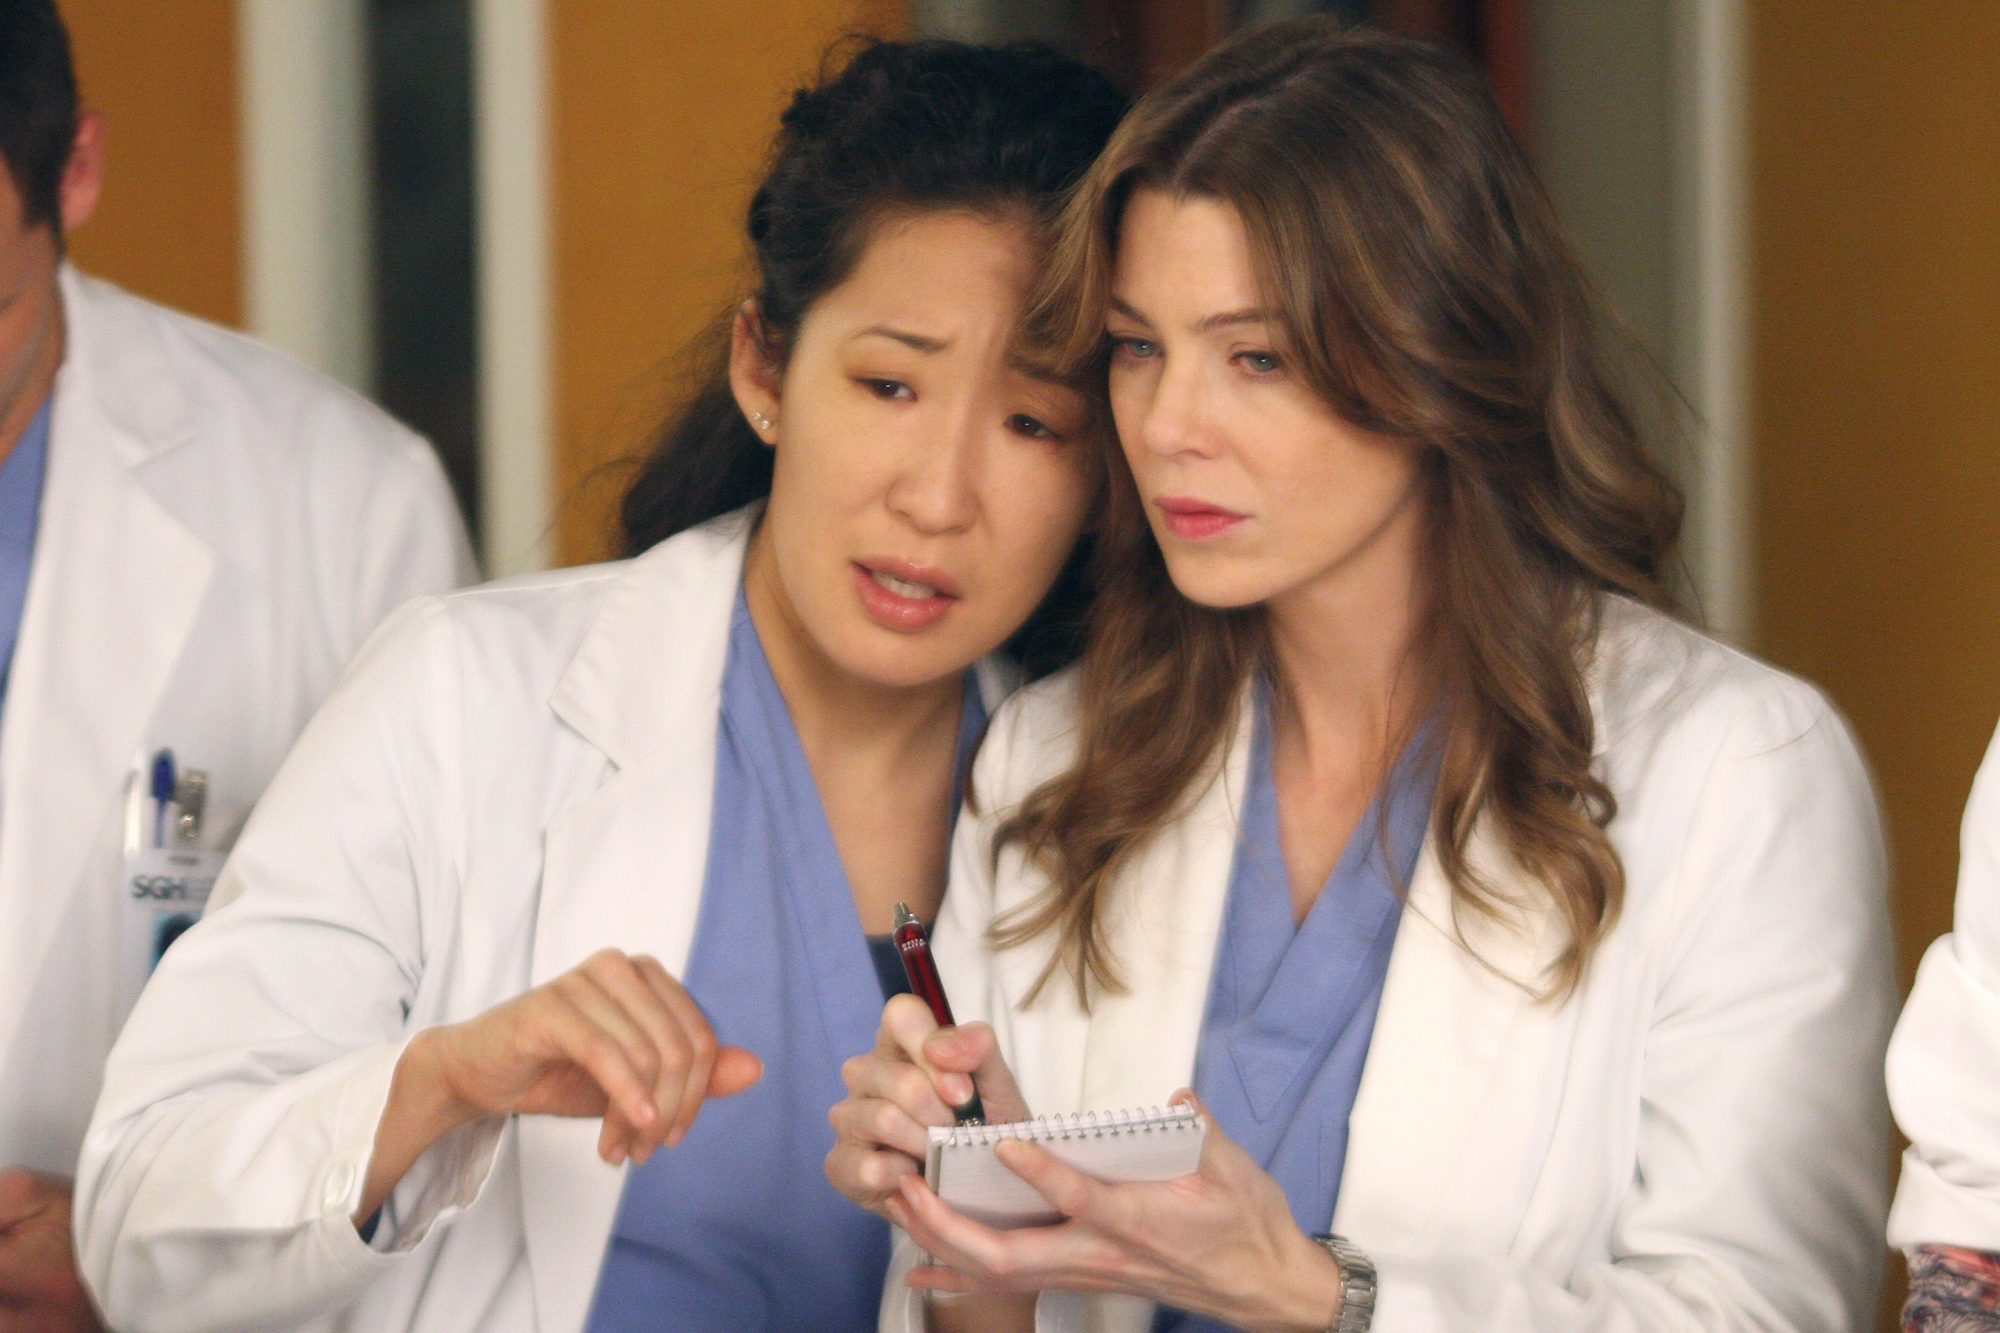 Sandra Oh plays Cristina Yang, an Asian American woman with curly black hair and wearing scrubs, stands beside Ellen Pompeo playing Meredith Grey, a white woman also wearing scrubs in Grey's Anatomy